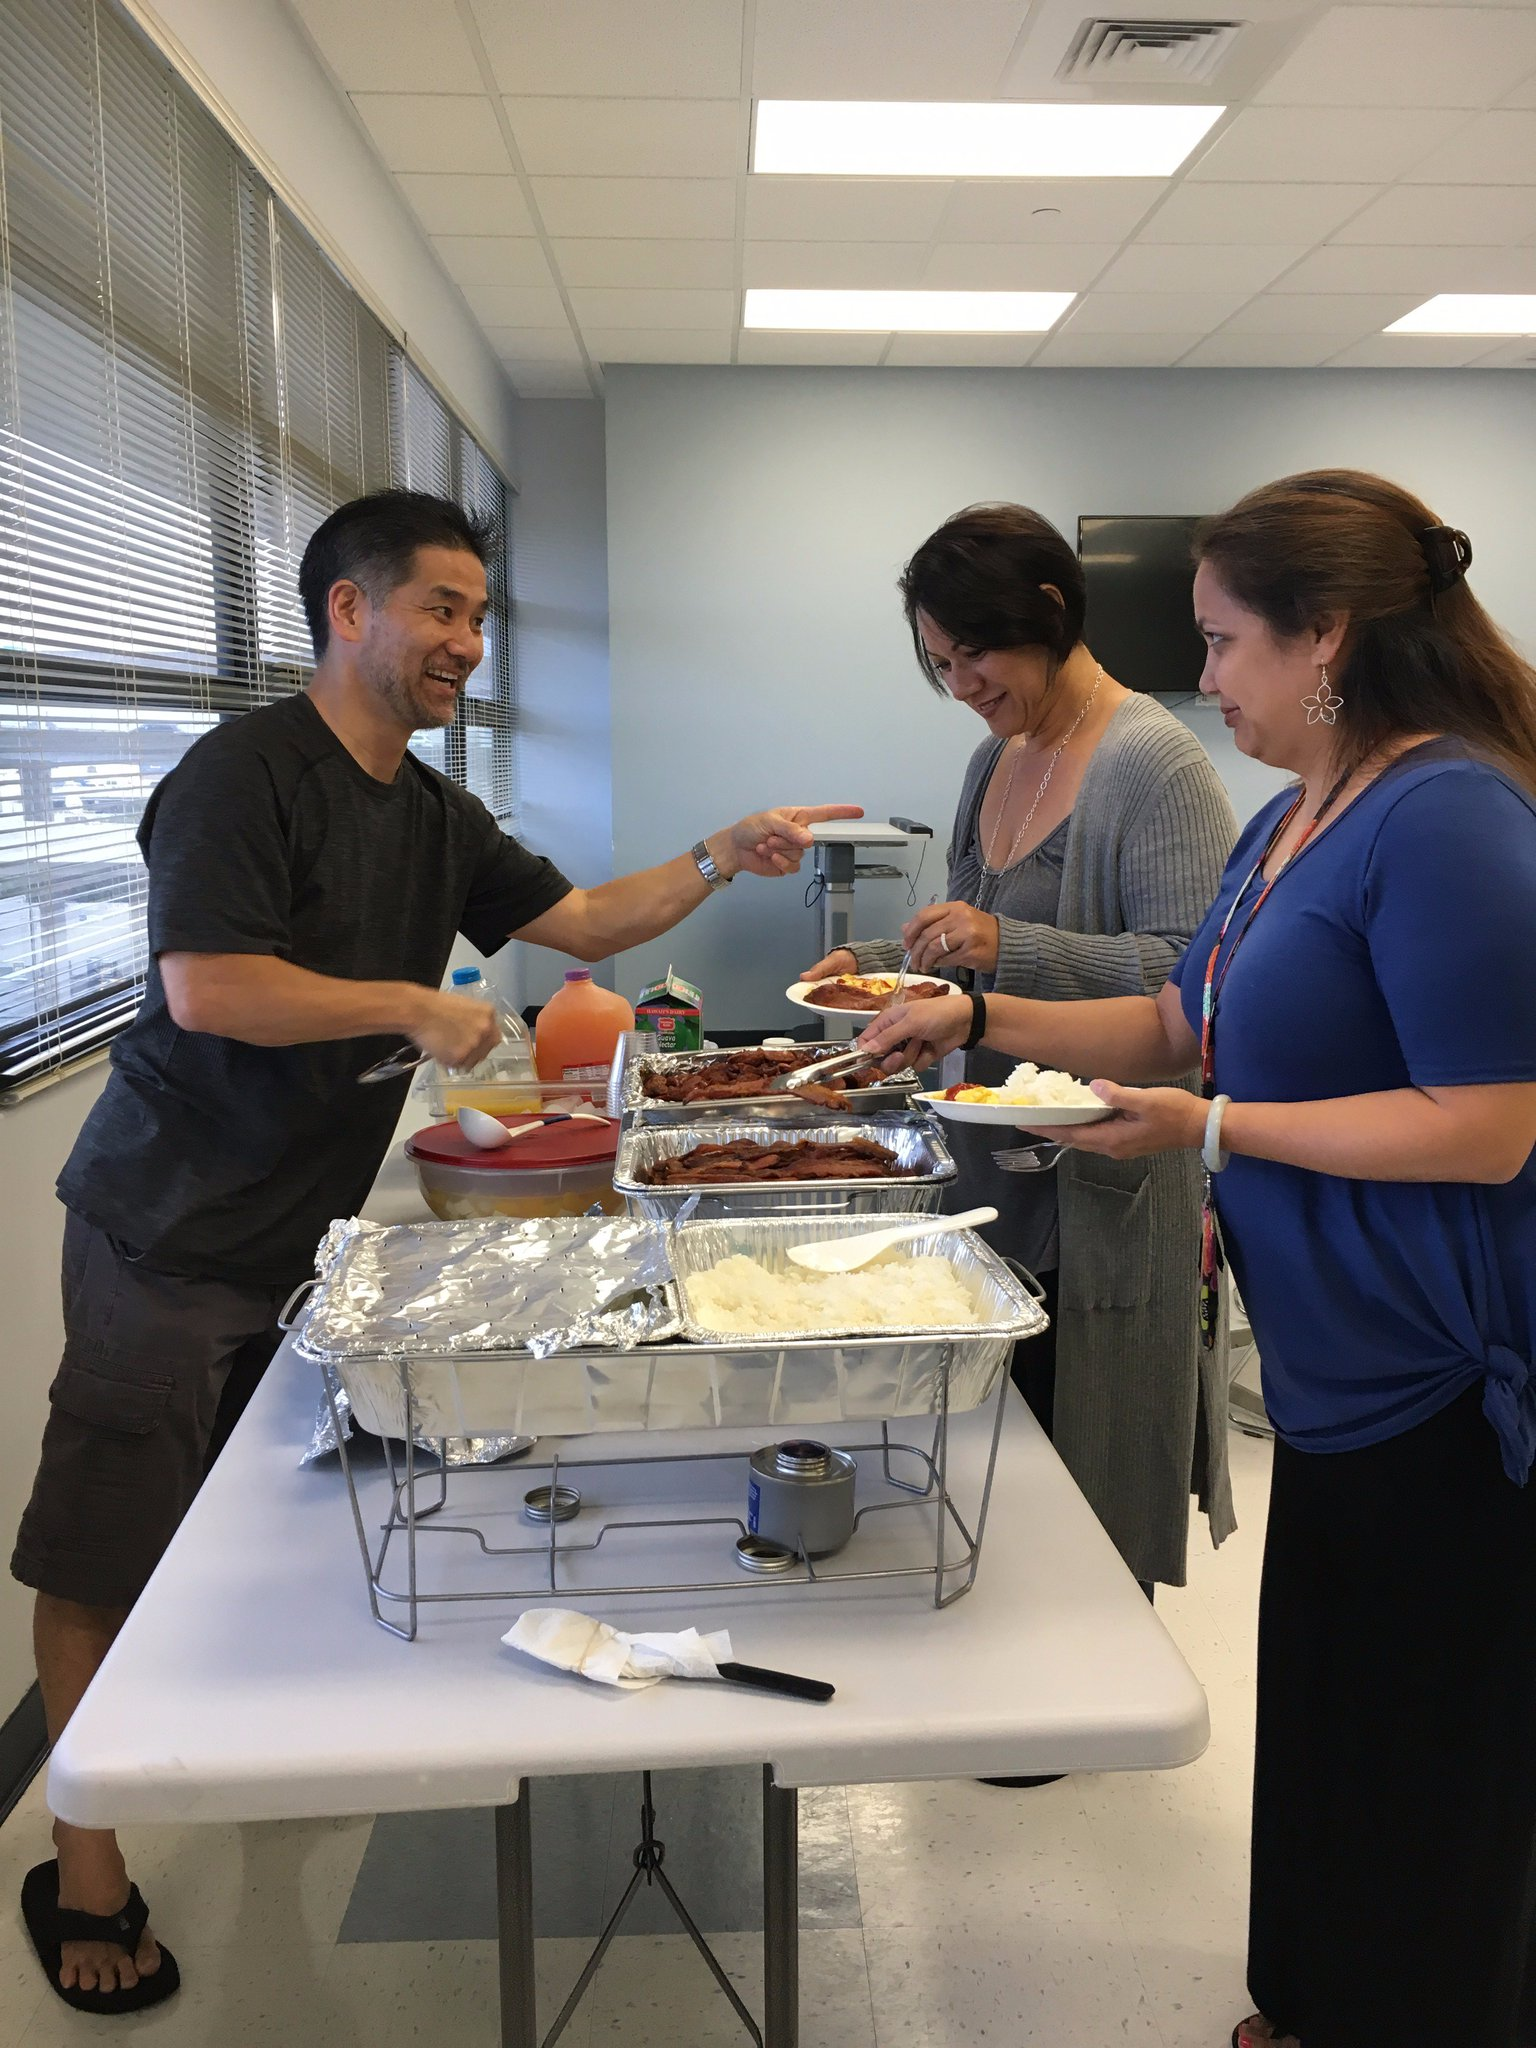 Rice, eggs, Portuguese sausage, bacon and almond float. So much yummy food for @marchofdimesHI fundraiser breakfast #ceridianhawaii50 https://t.co/REk5YcLpPH